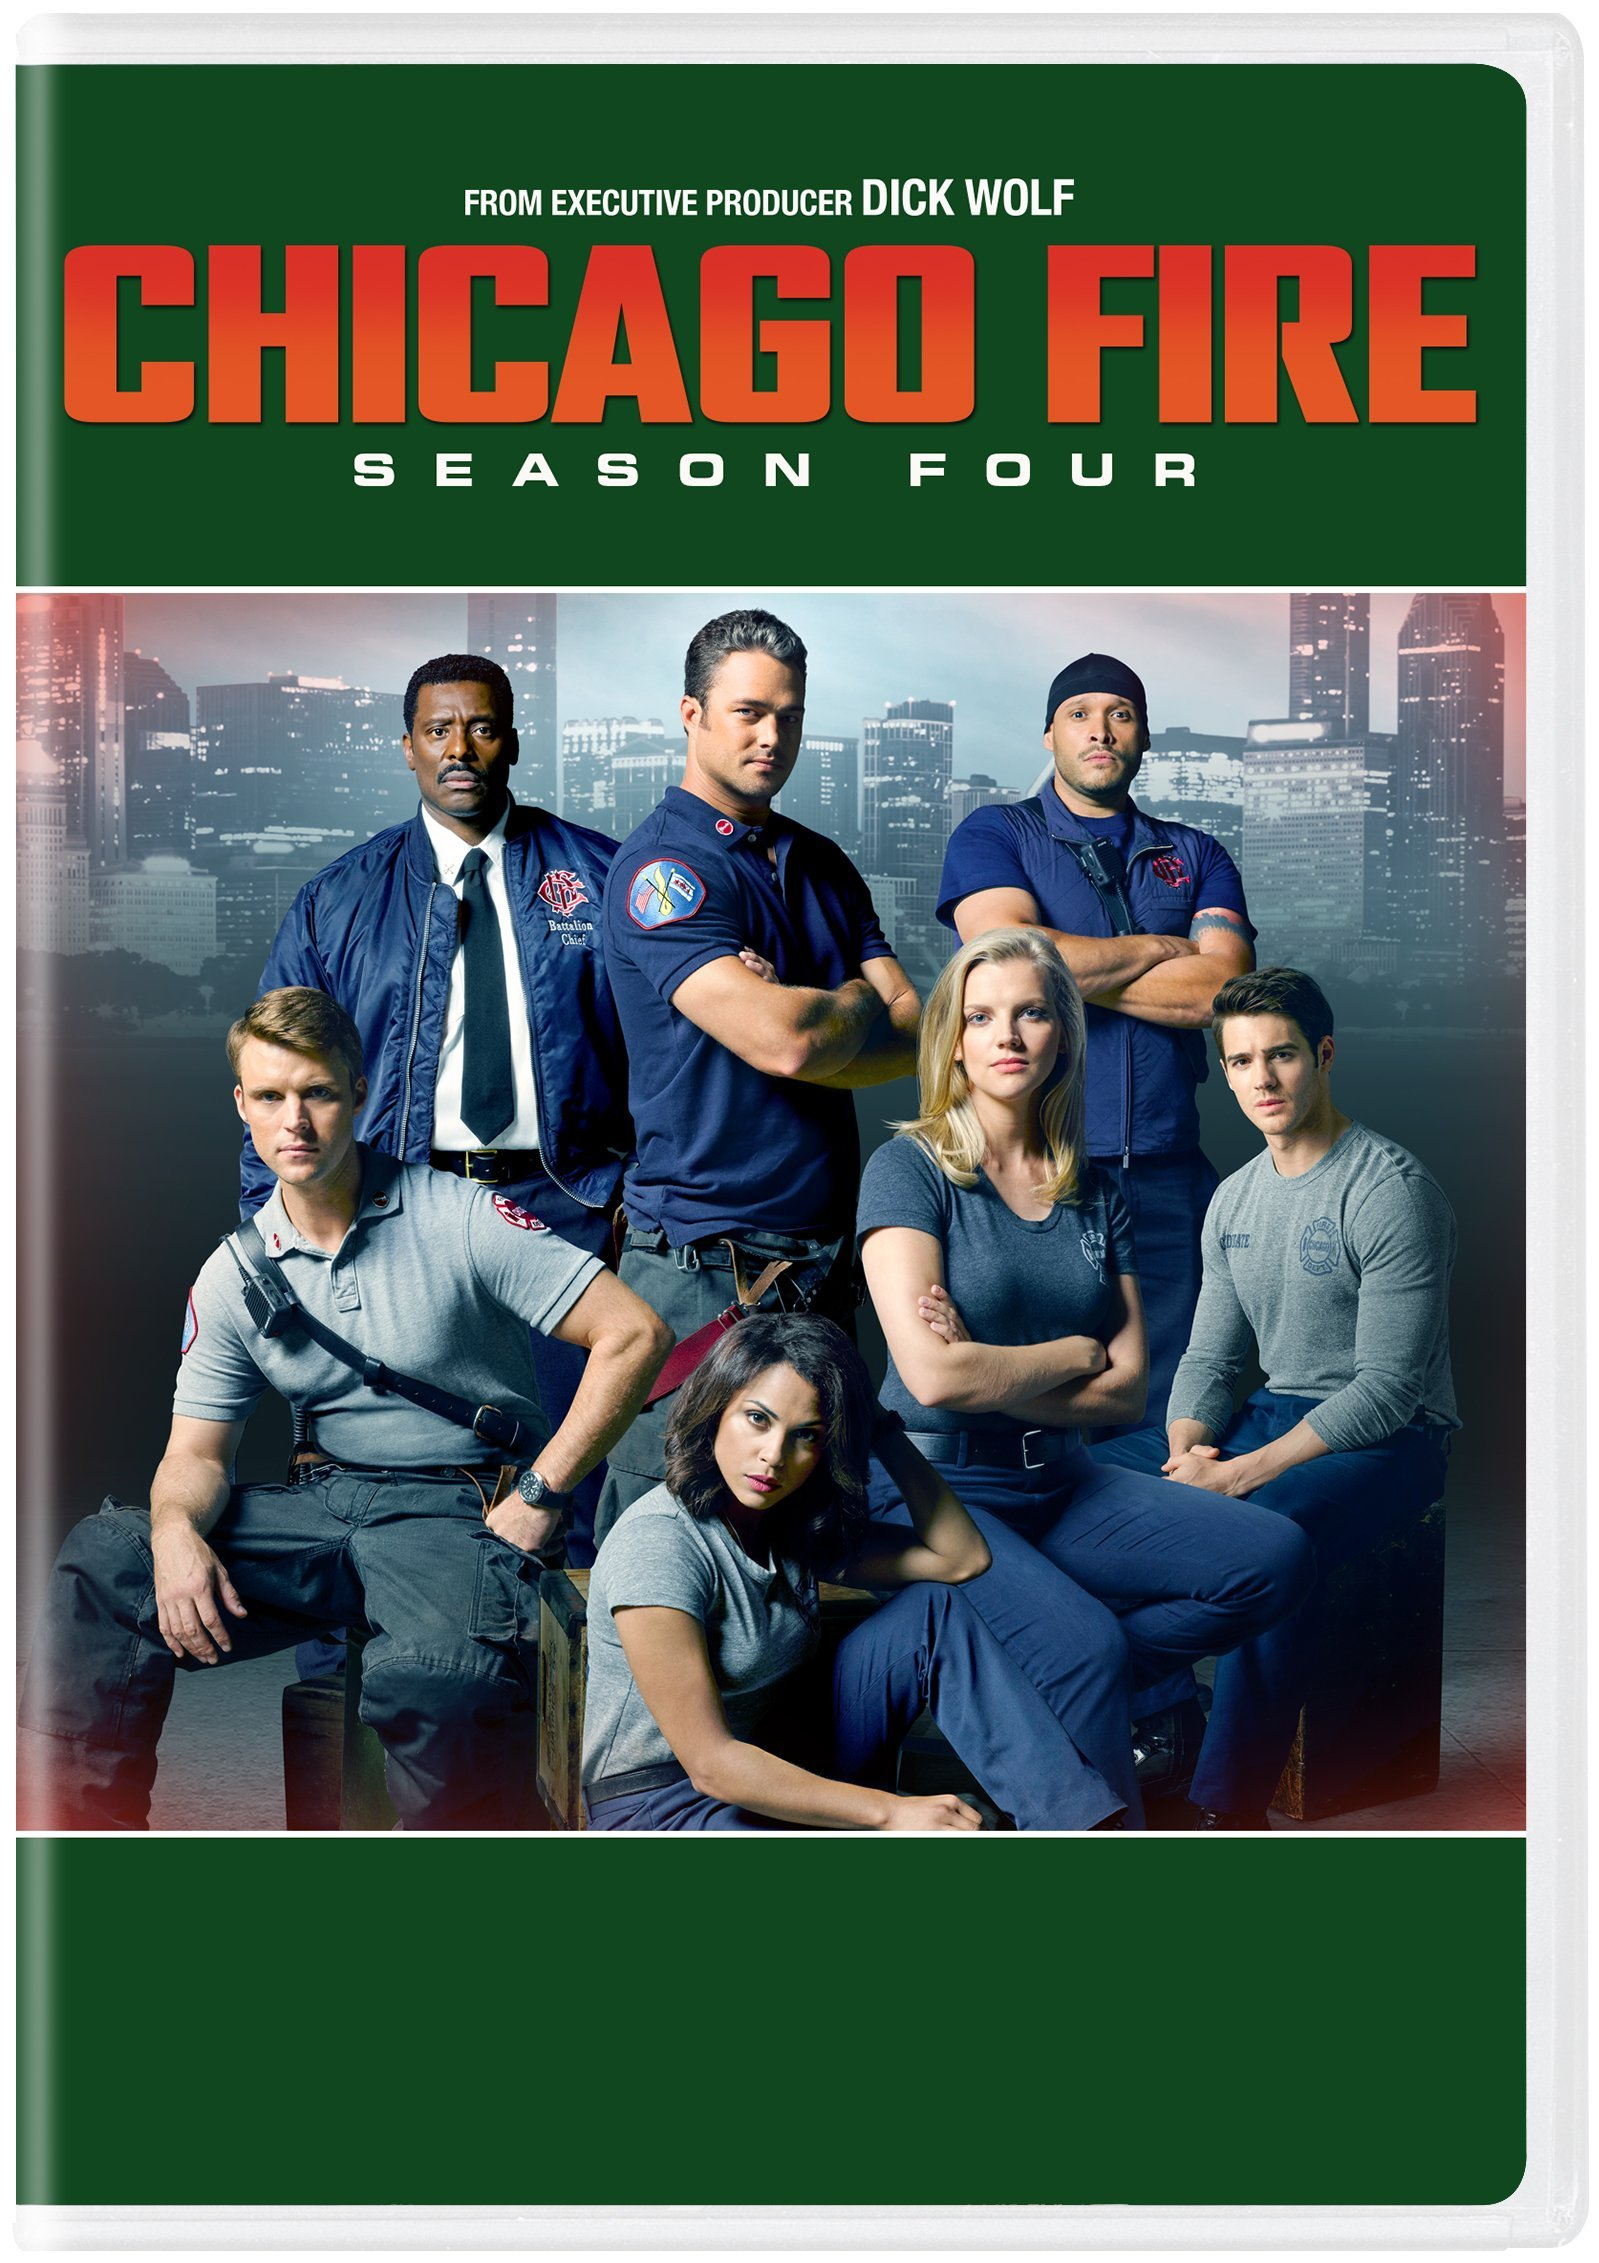 DVD : Chicago Fire: Season Four (Boxed Set, Snap Case, Slipsleeve Packaging, 6 Disc)